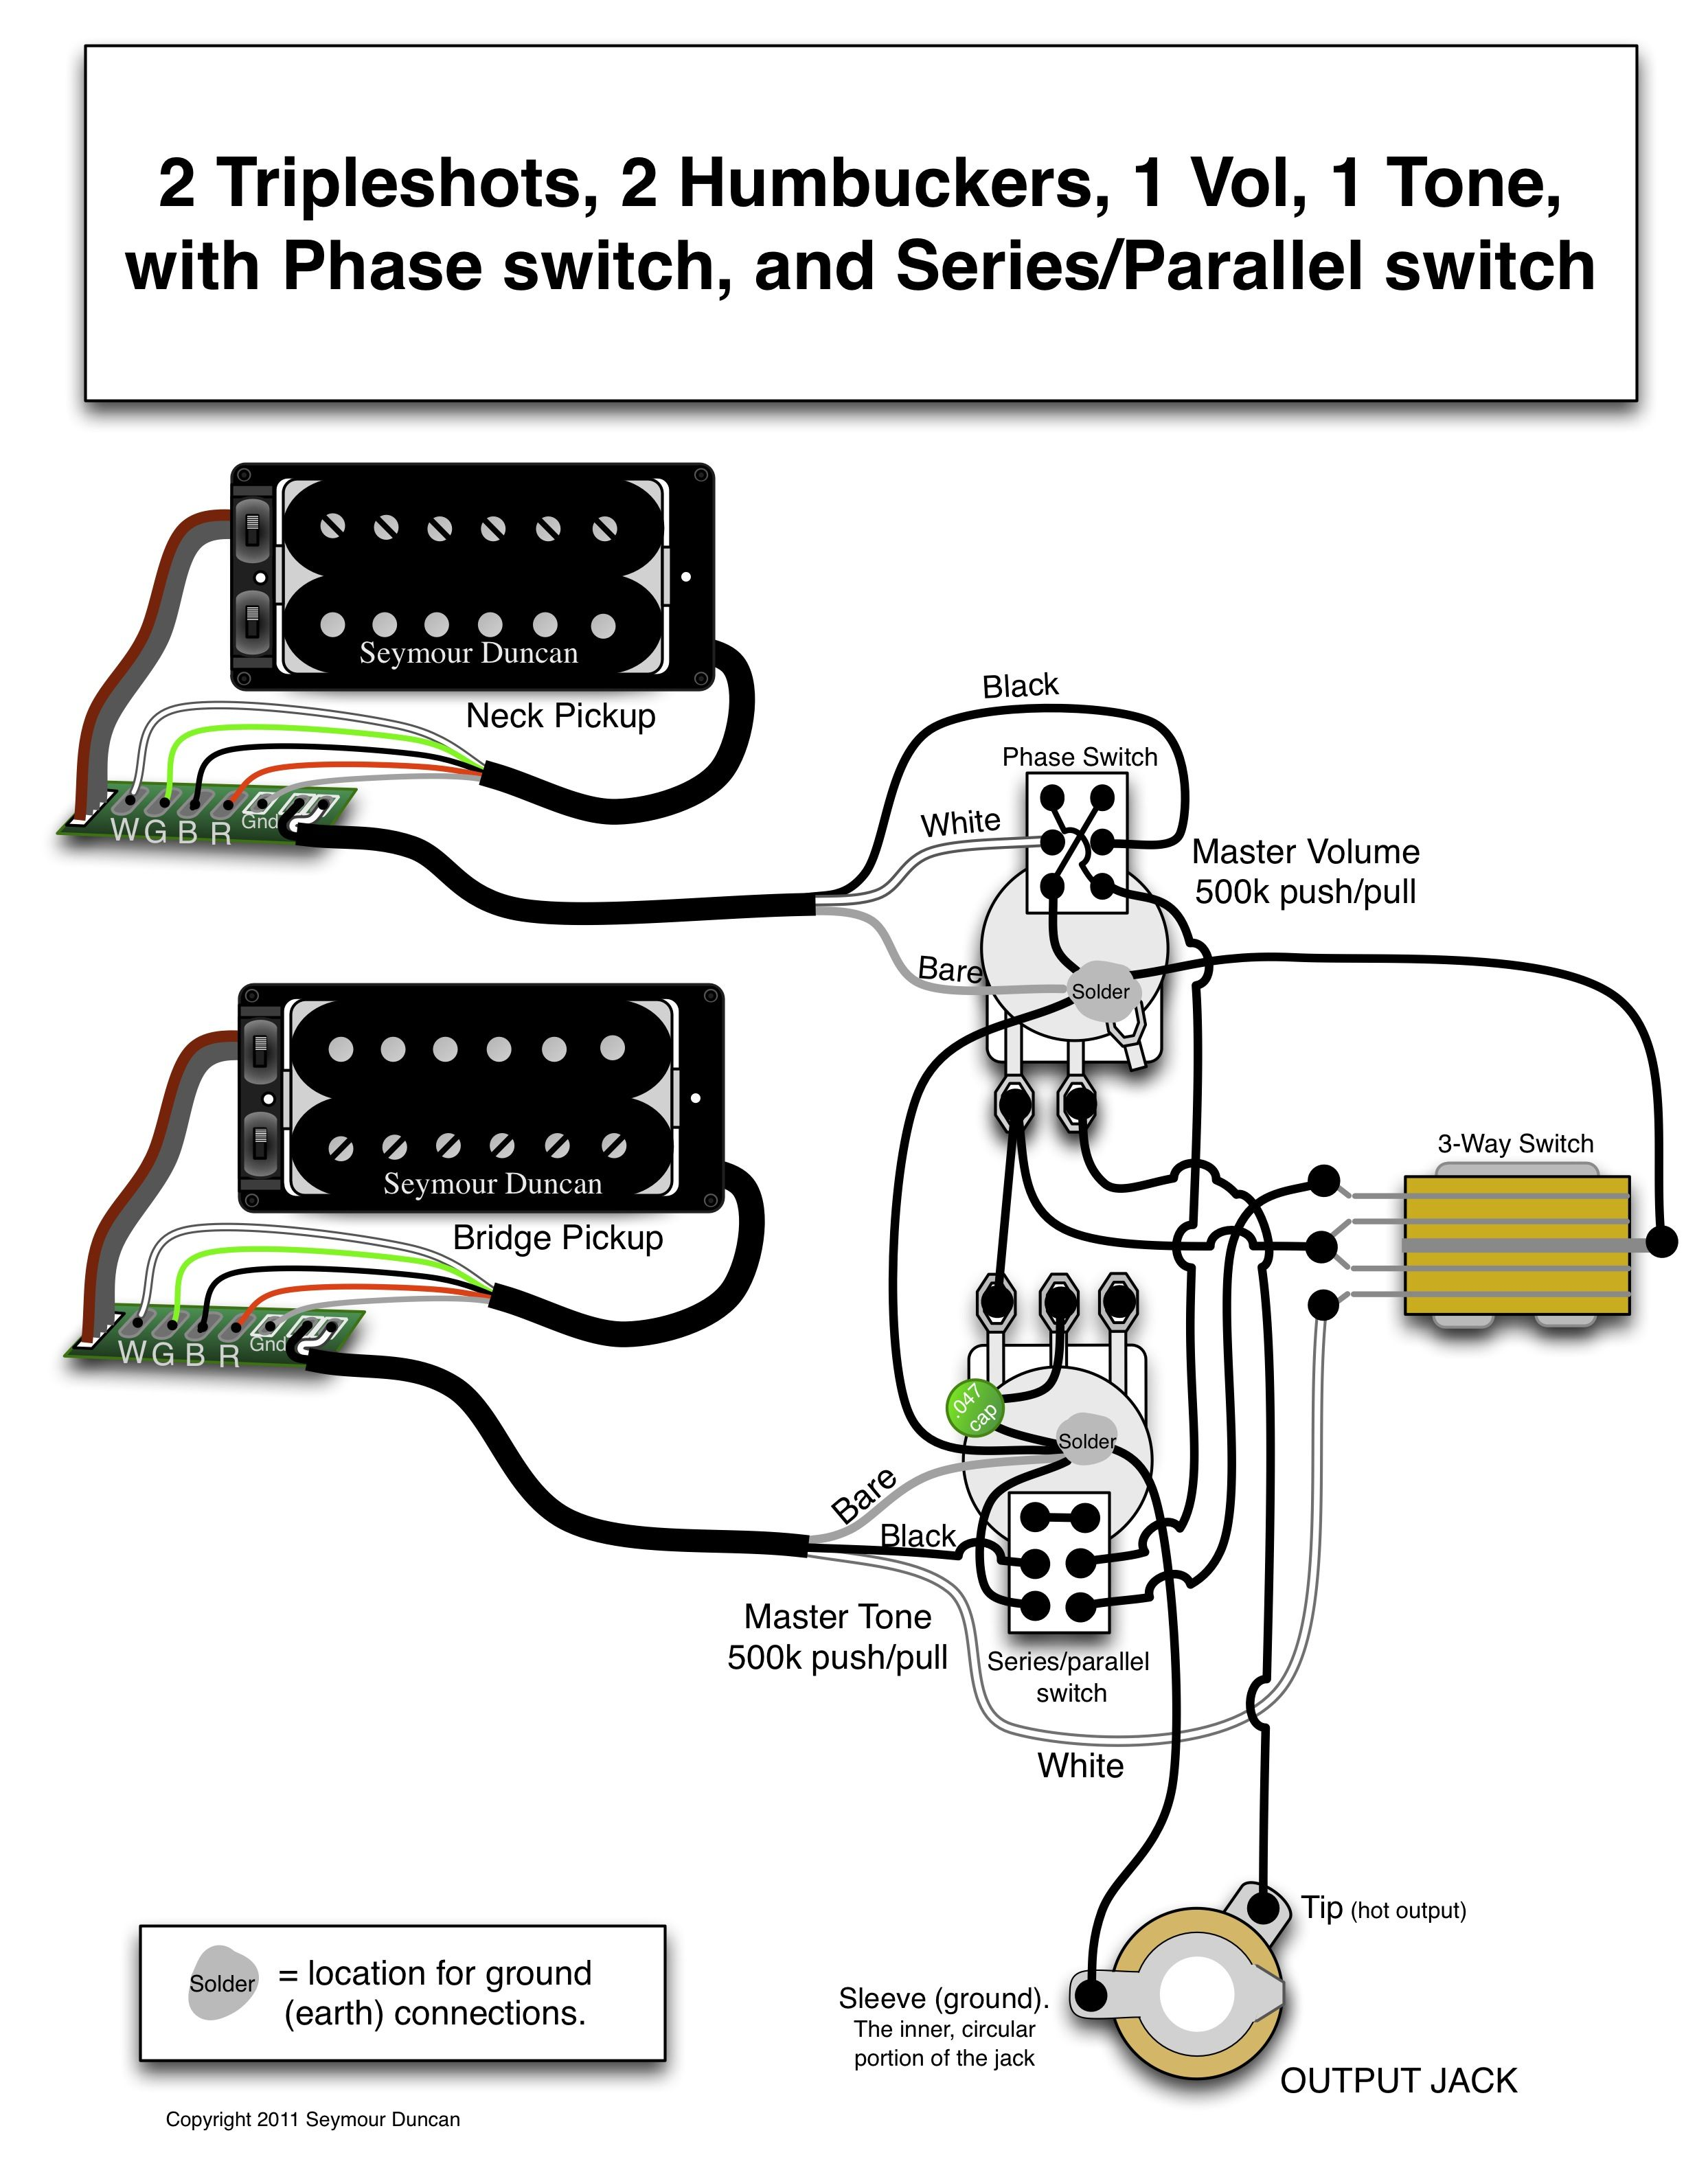 11e7a4ce932088841833425d14ebd2ea seymour duncan wiring diagram 2 triple shots, 2 humbuckers, 1  at creativeand.co